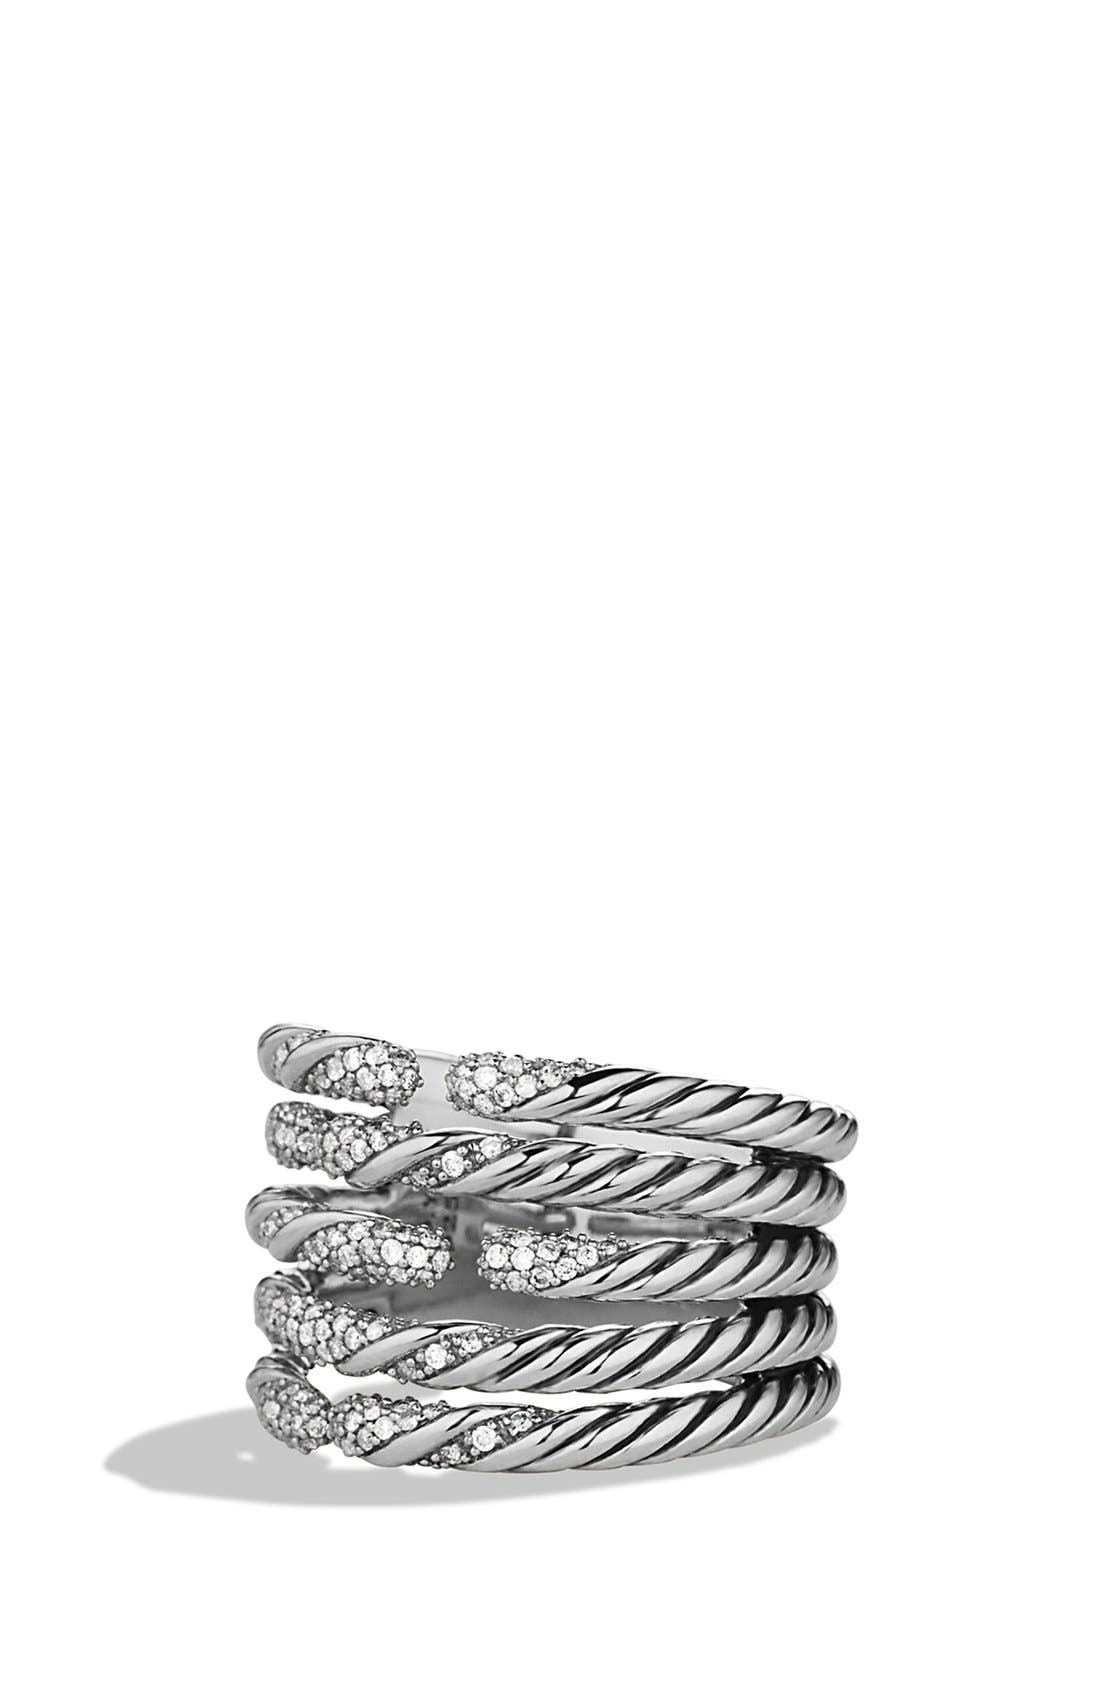 Alternate Image 1 Selected - David Yurman 'Willow' Five-Row Ring with Diamonds